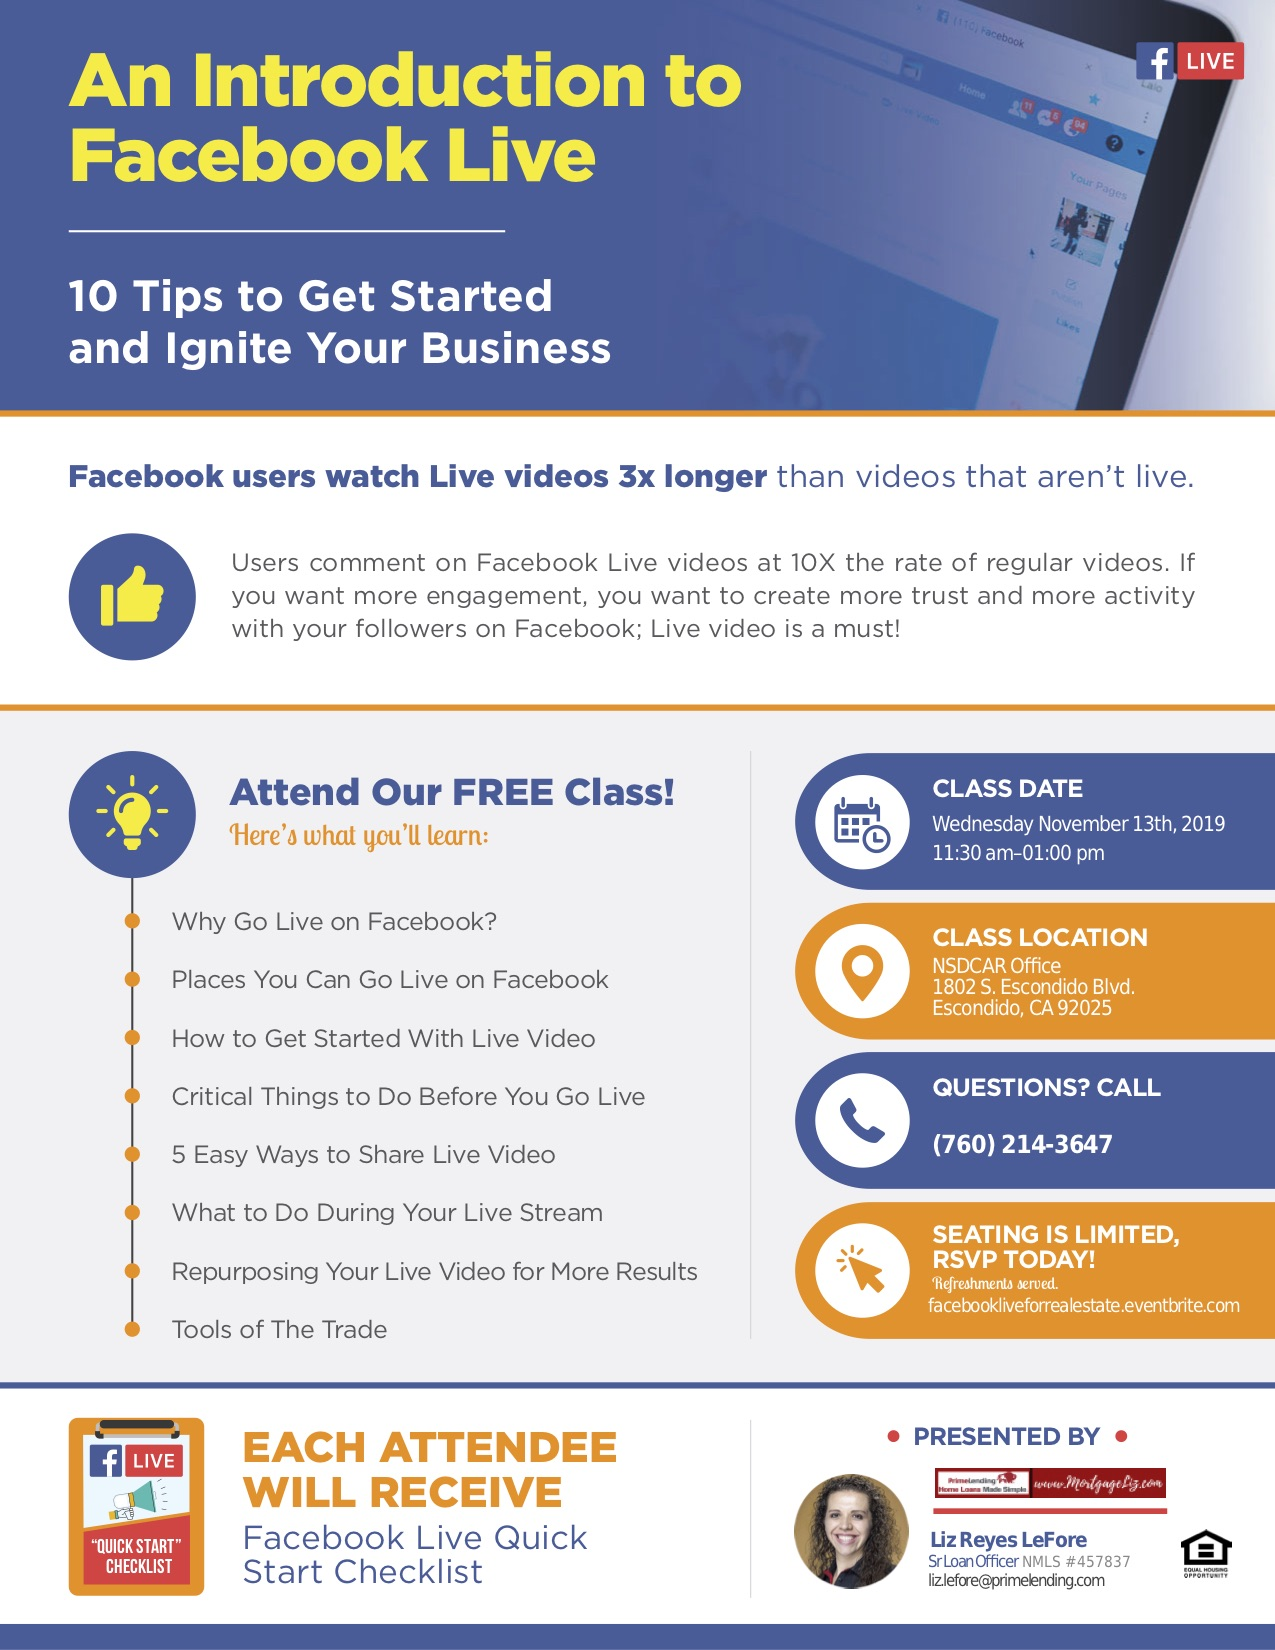 An Introduction to Facebook Live for Real Estate Tickets